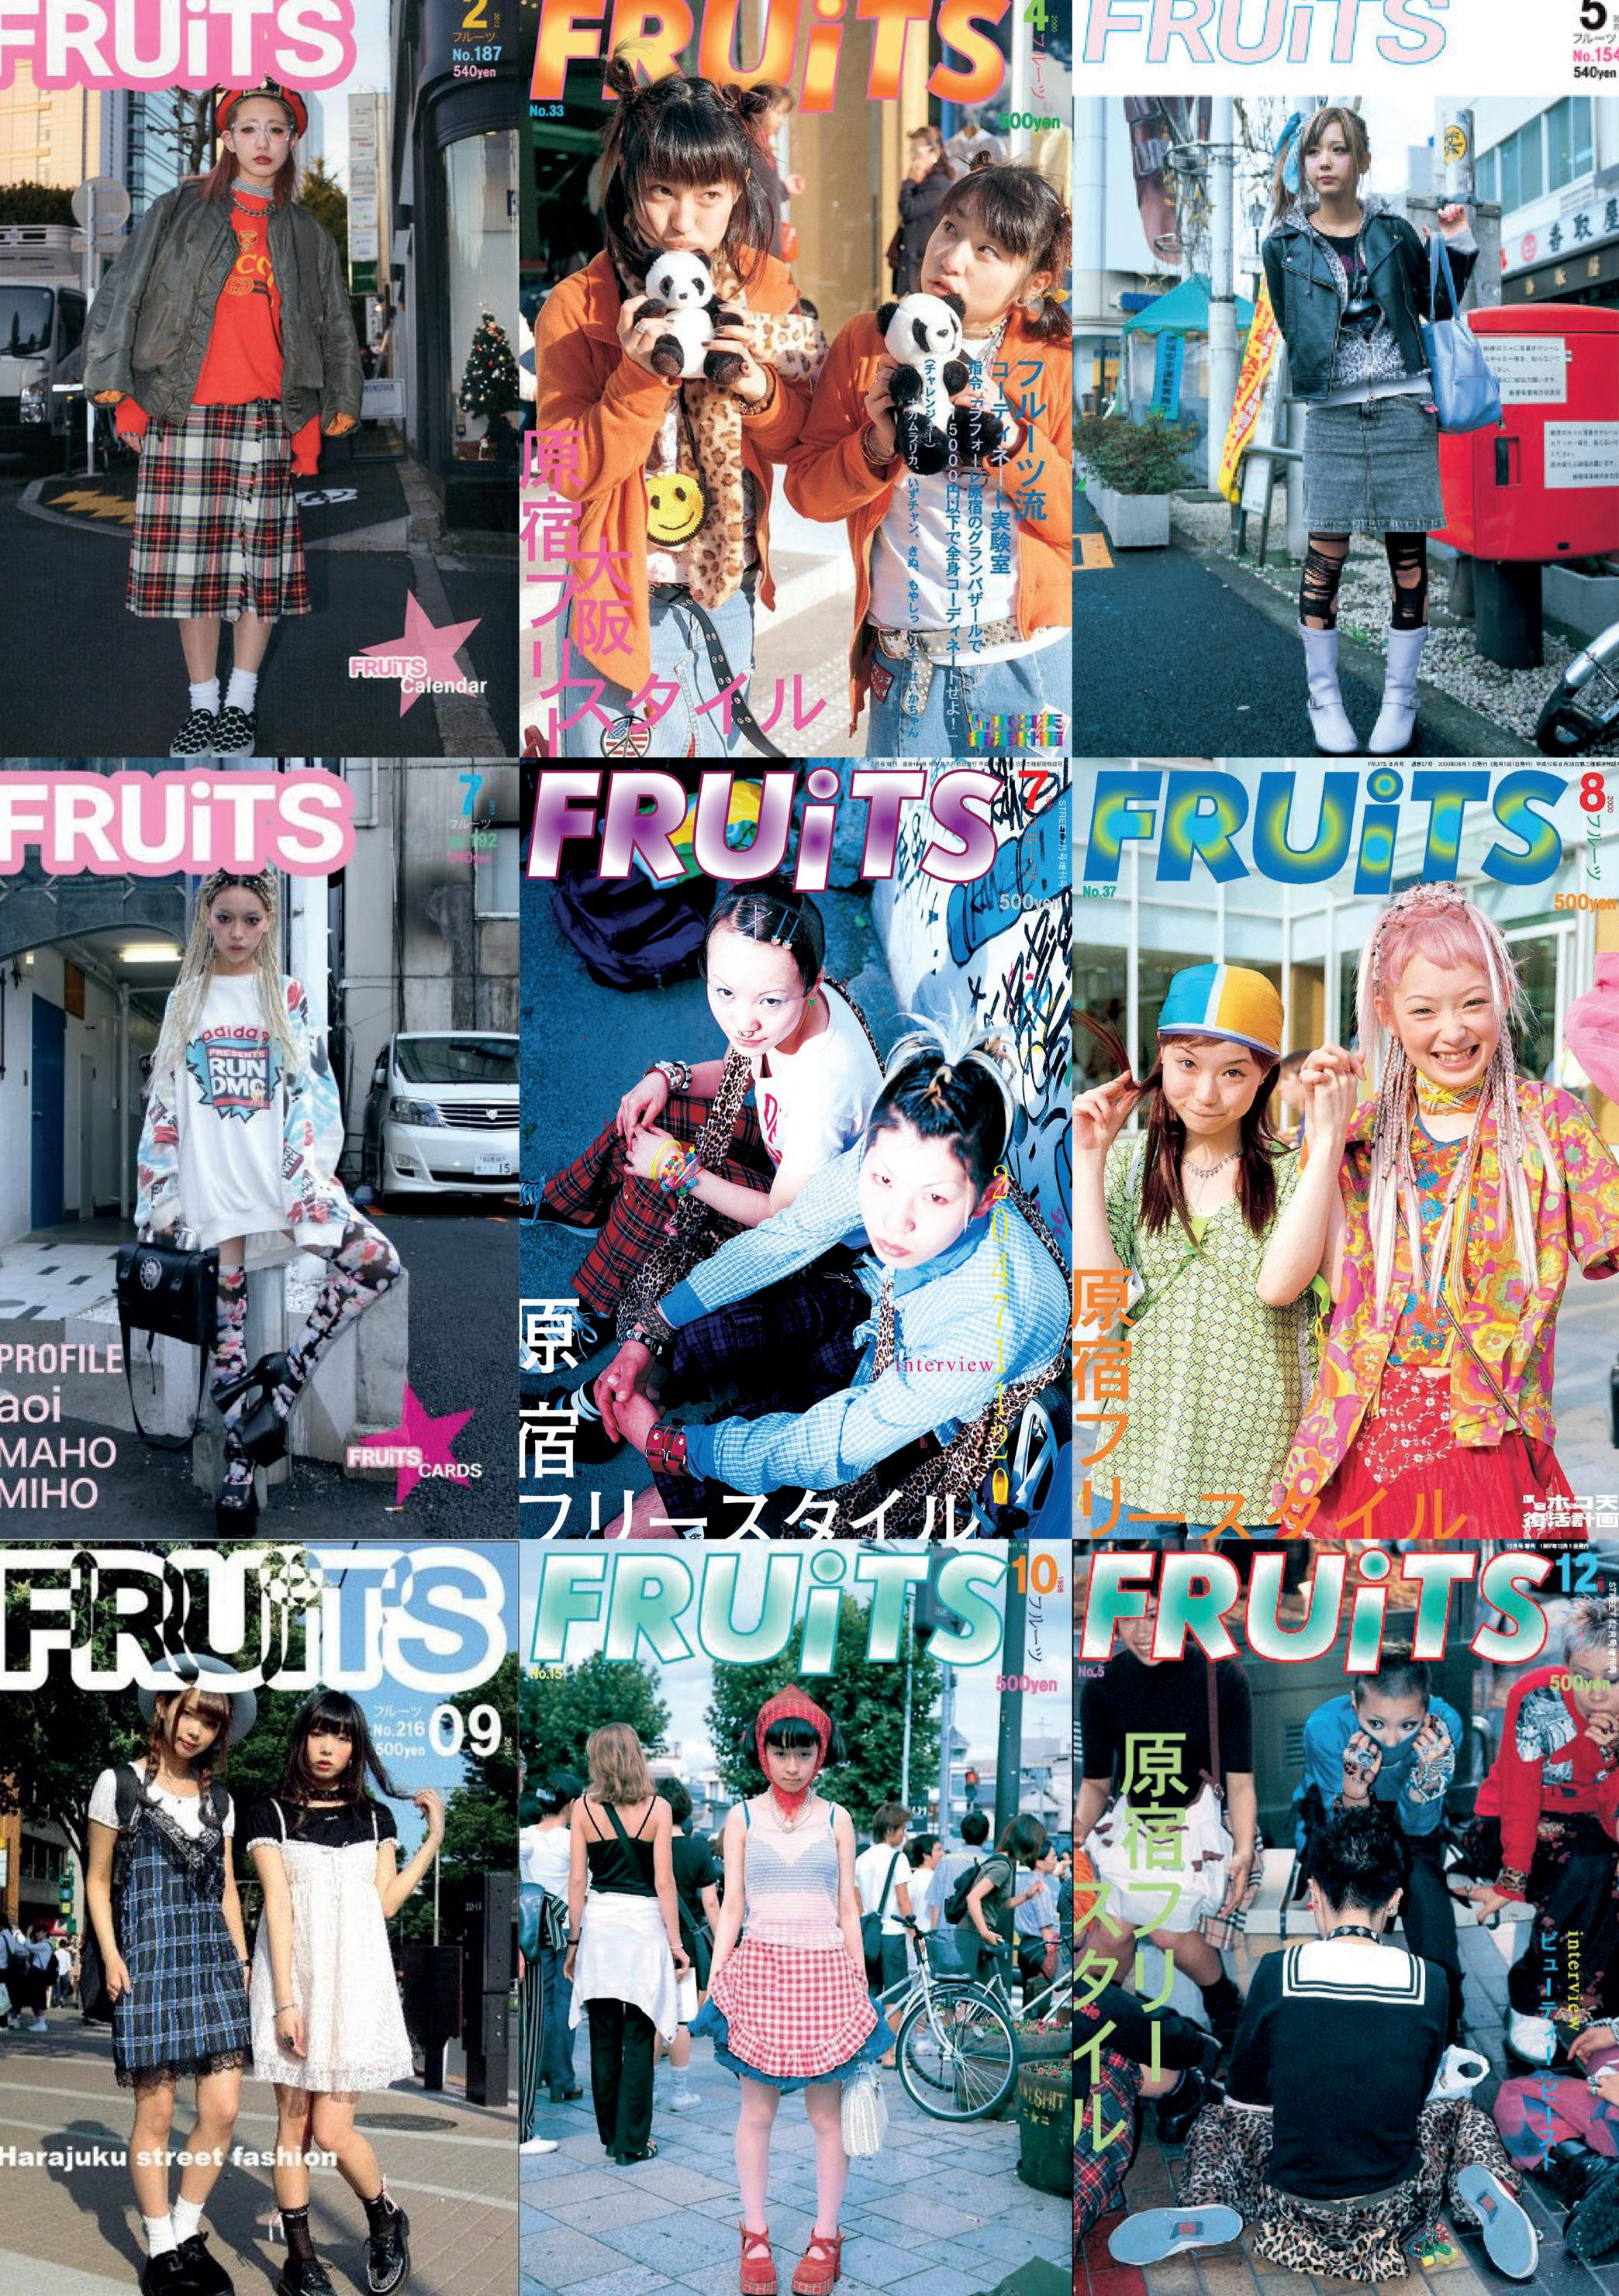 Page 58 of FRUiTS & Fashion